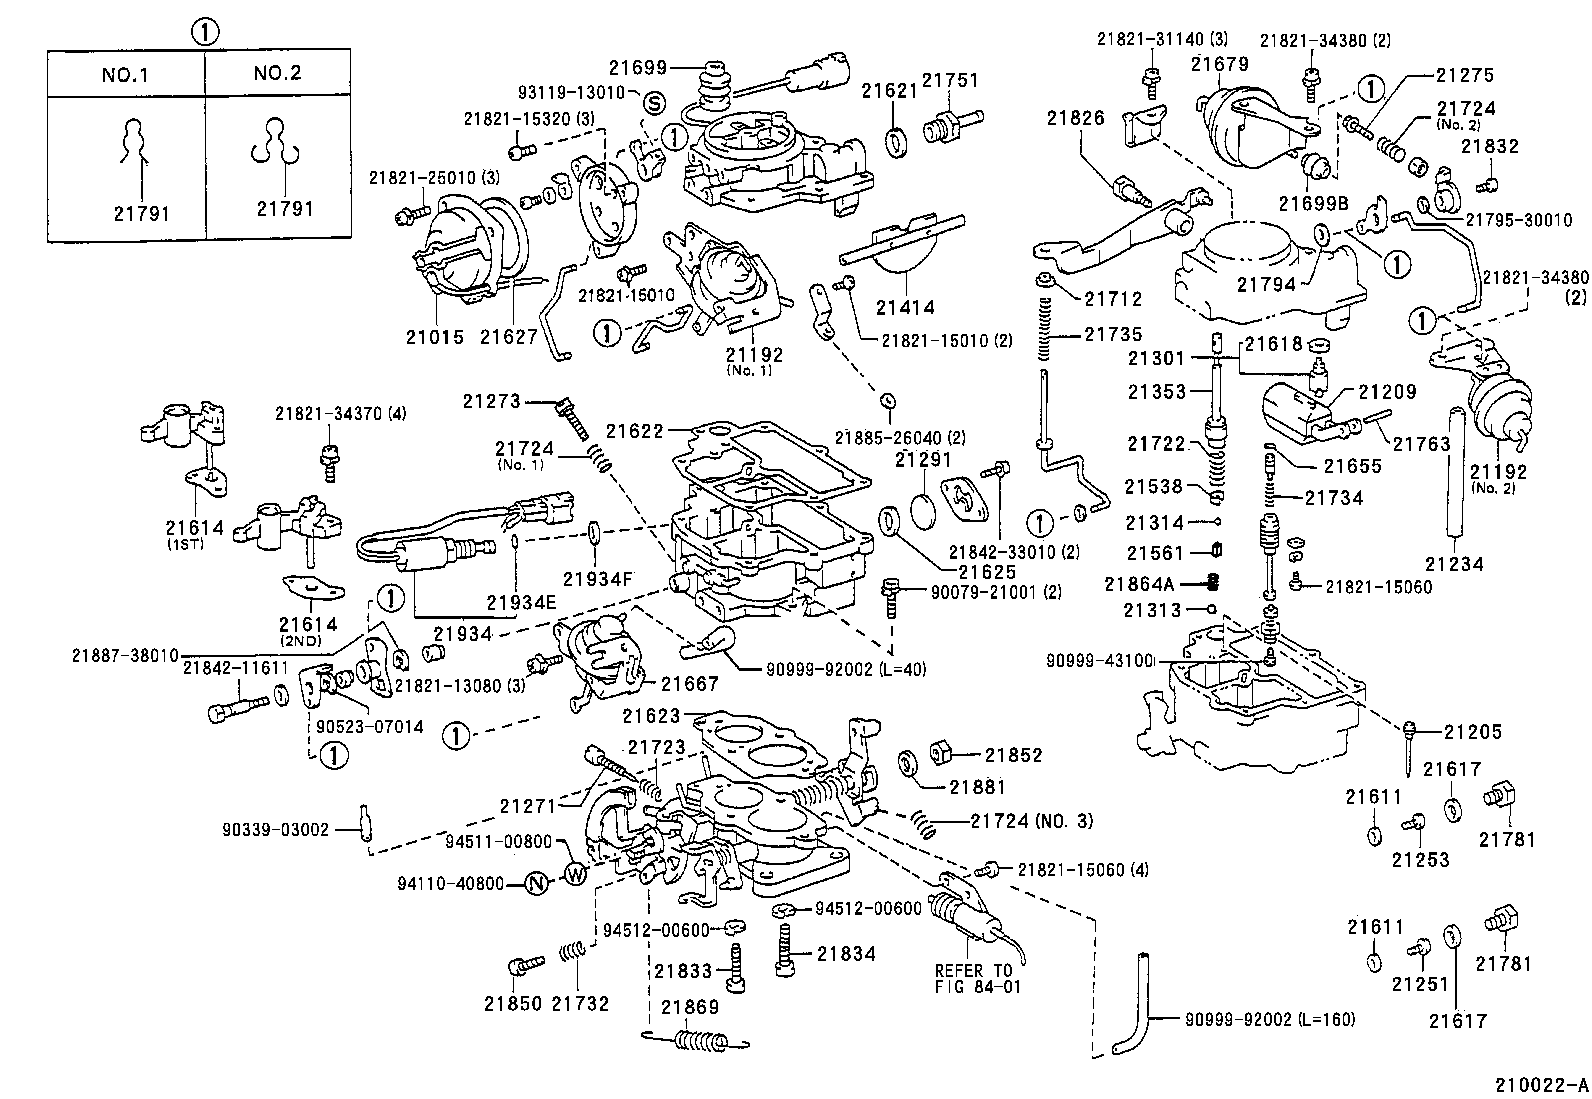 1982 Toyota Tercel Engine Diagram Wiring For Free Alternator Diagrams Dodge Cummins Diesel Forum 3 Together With Further Besides 1986 Mr2 Likewise